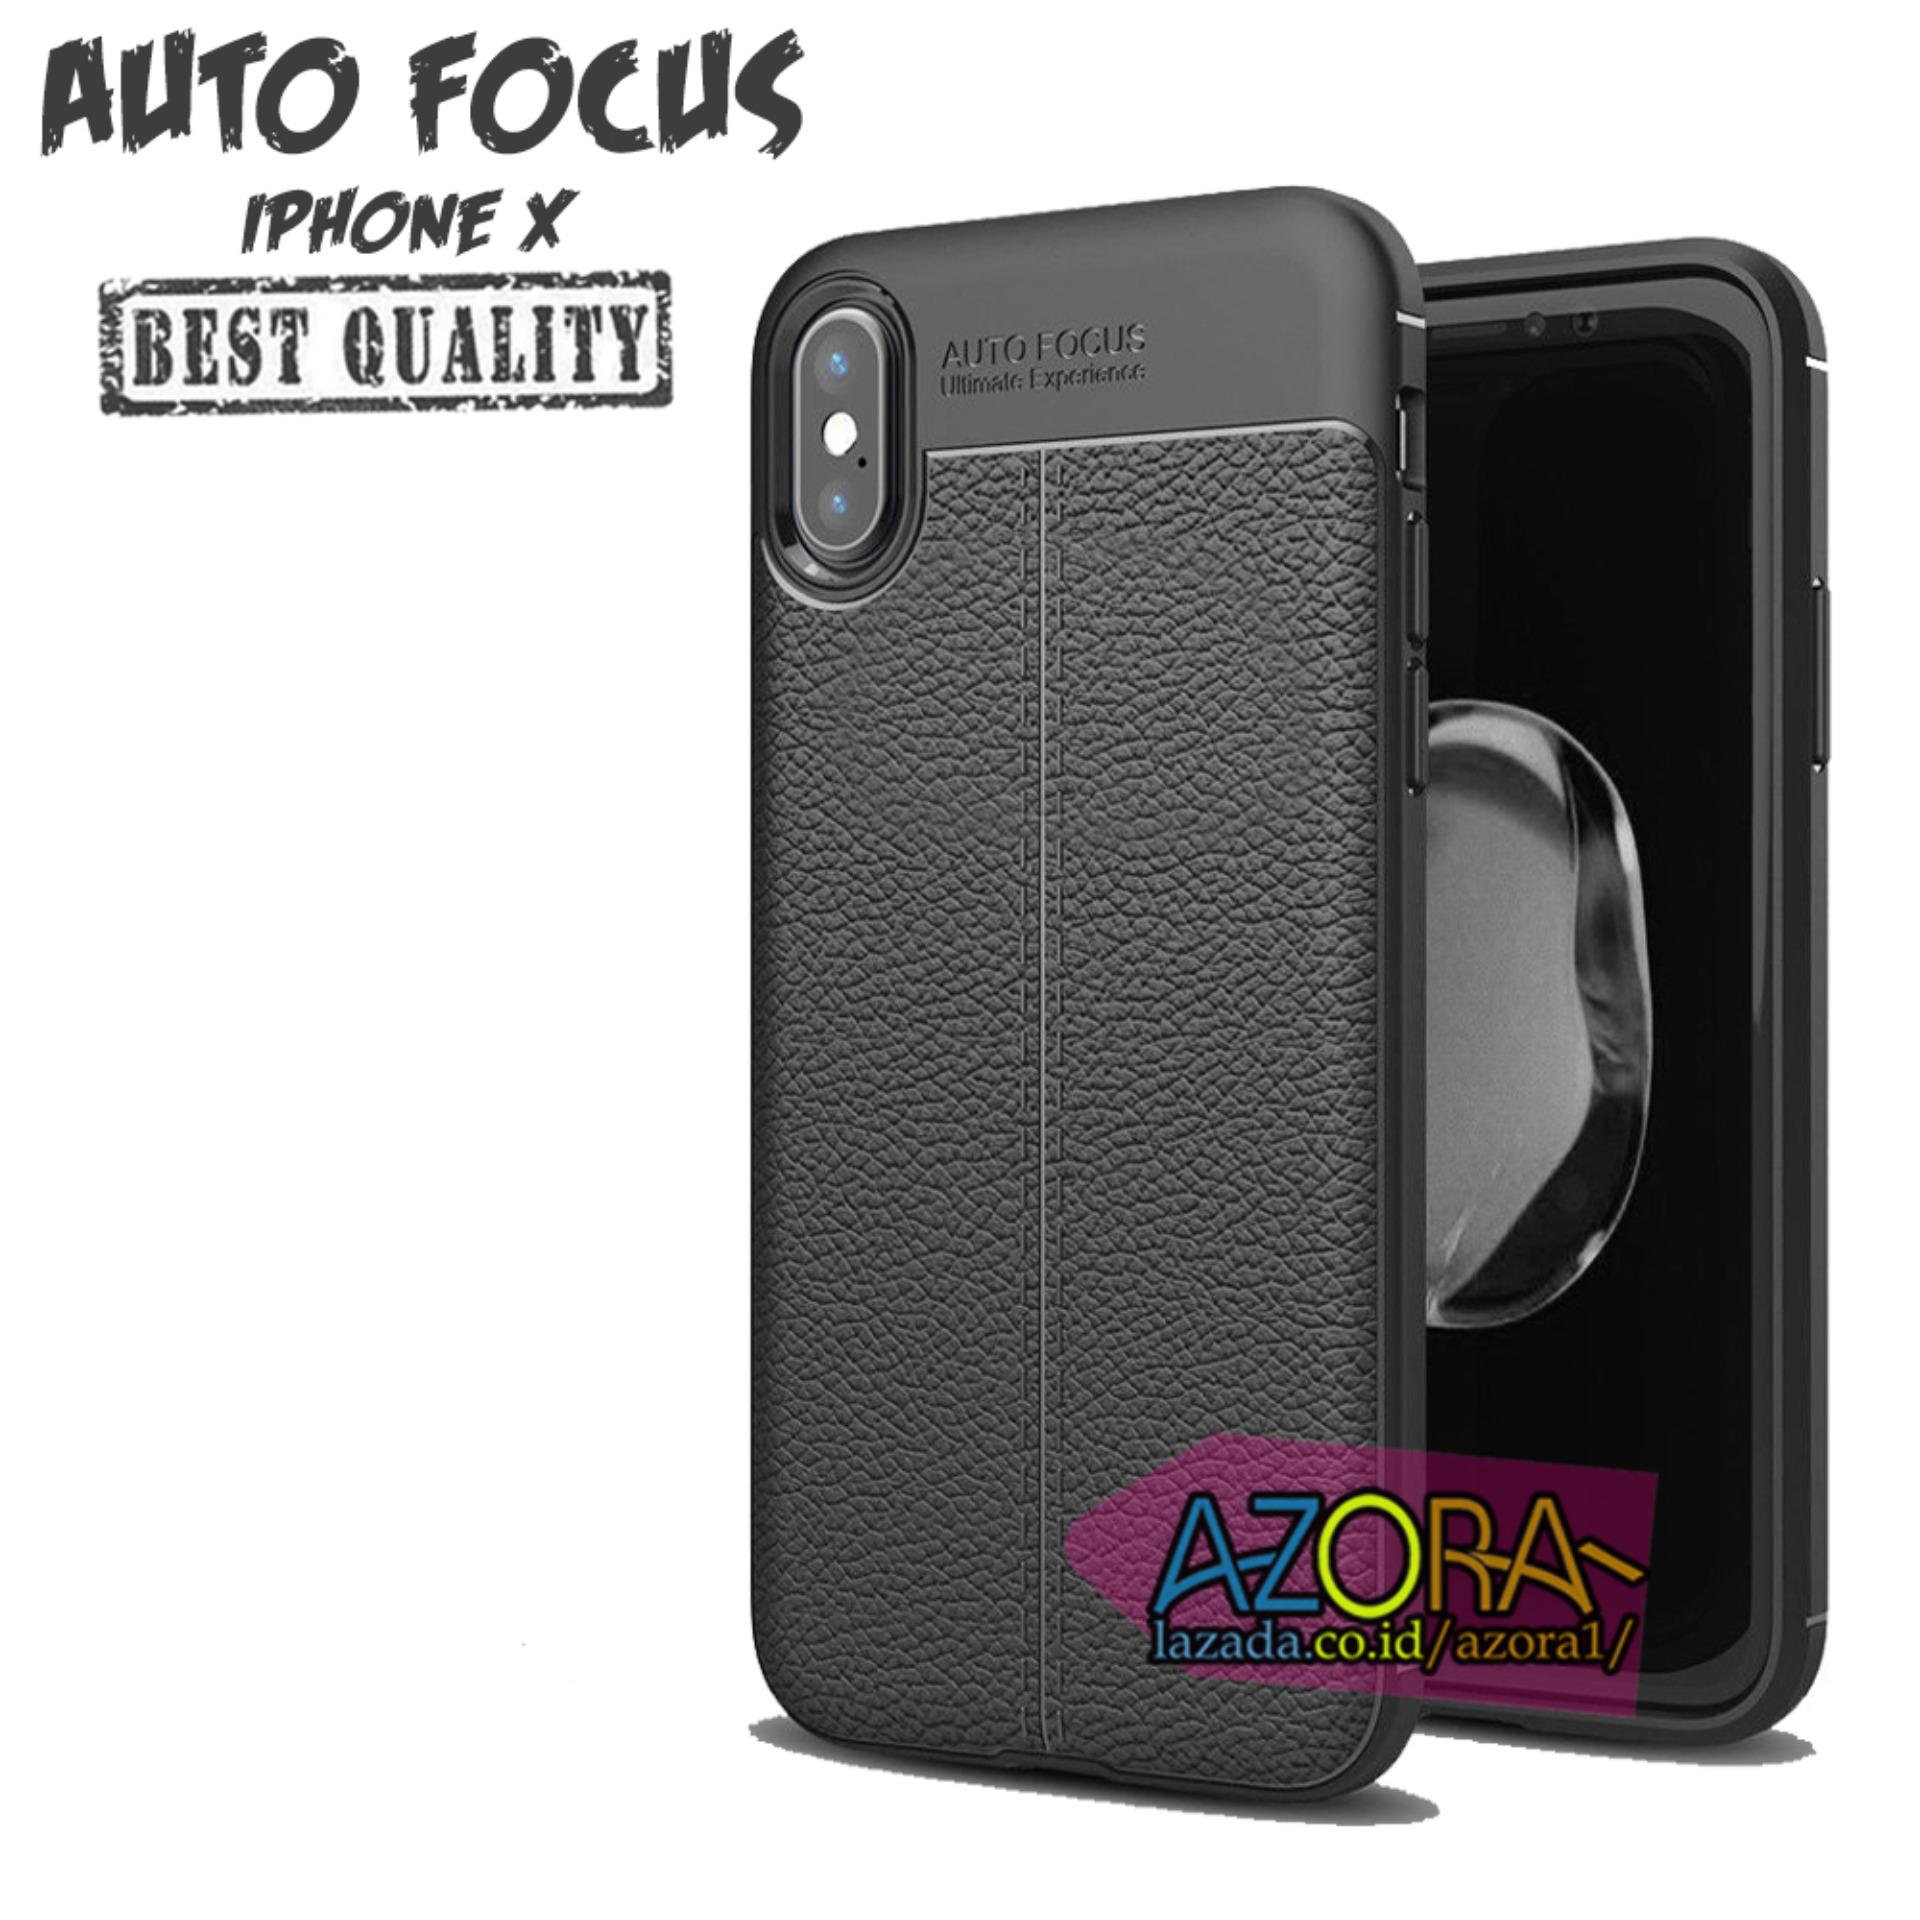 Case Auto Focus Iphone X ( 5.8 Inch ) Dual Camera Leather Experience Slim Ultimate